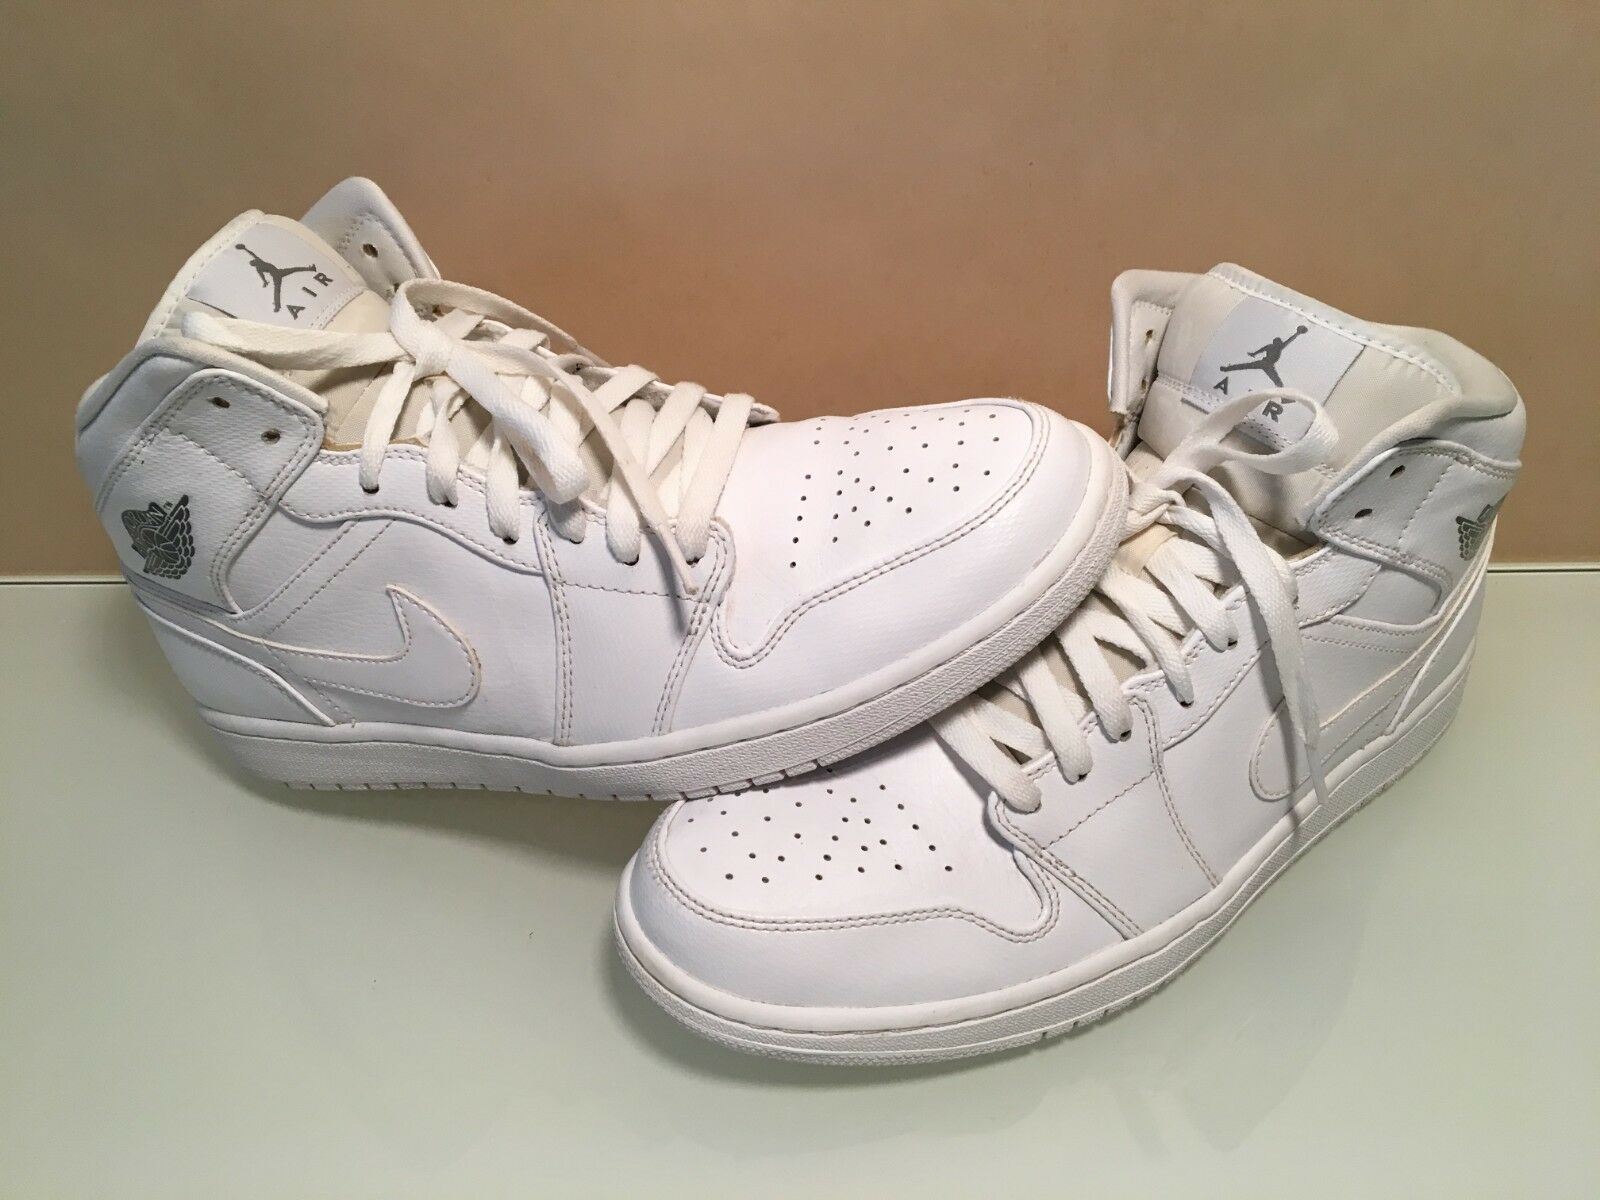 MENS NIKE AIR JORDAN 1 RETRO SHOES,YEAR 2014,AUTHENTIC,SLIGHTLY USED,SIZE 12 U.S